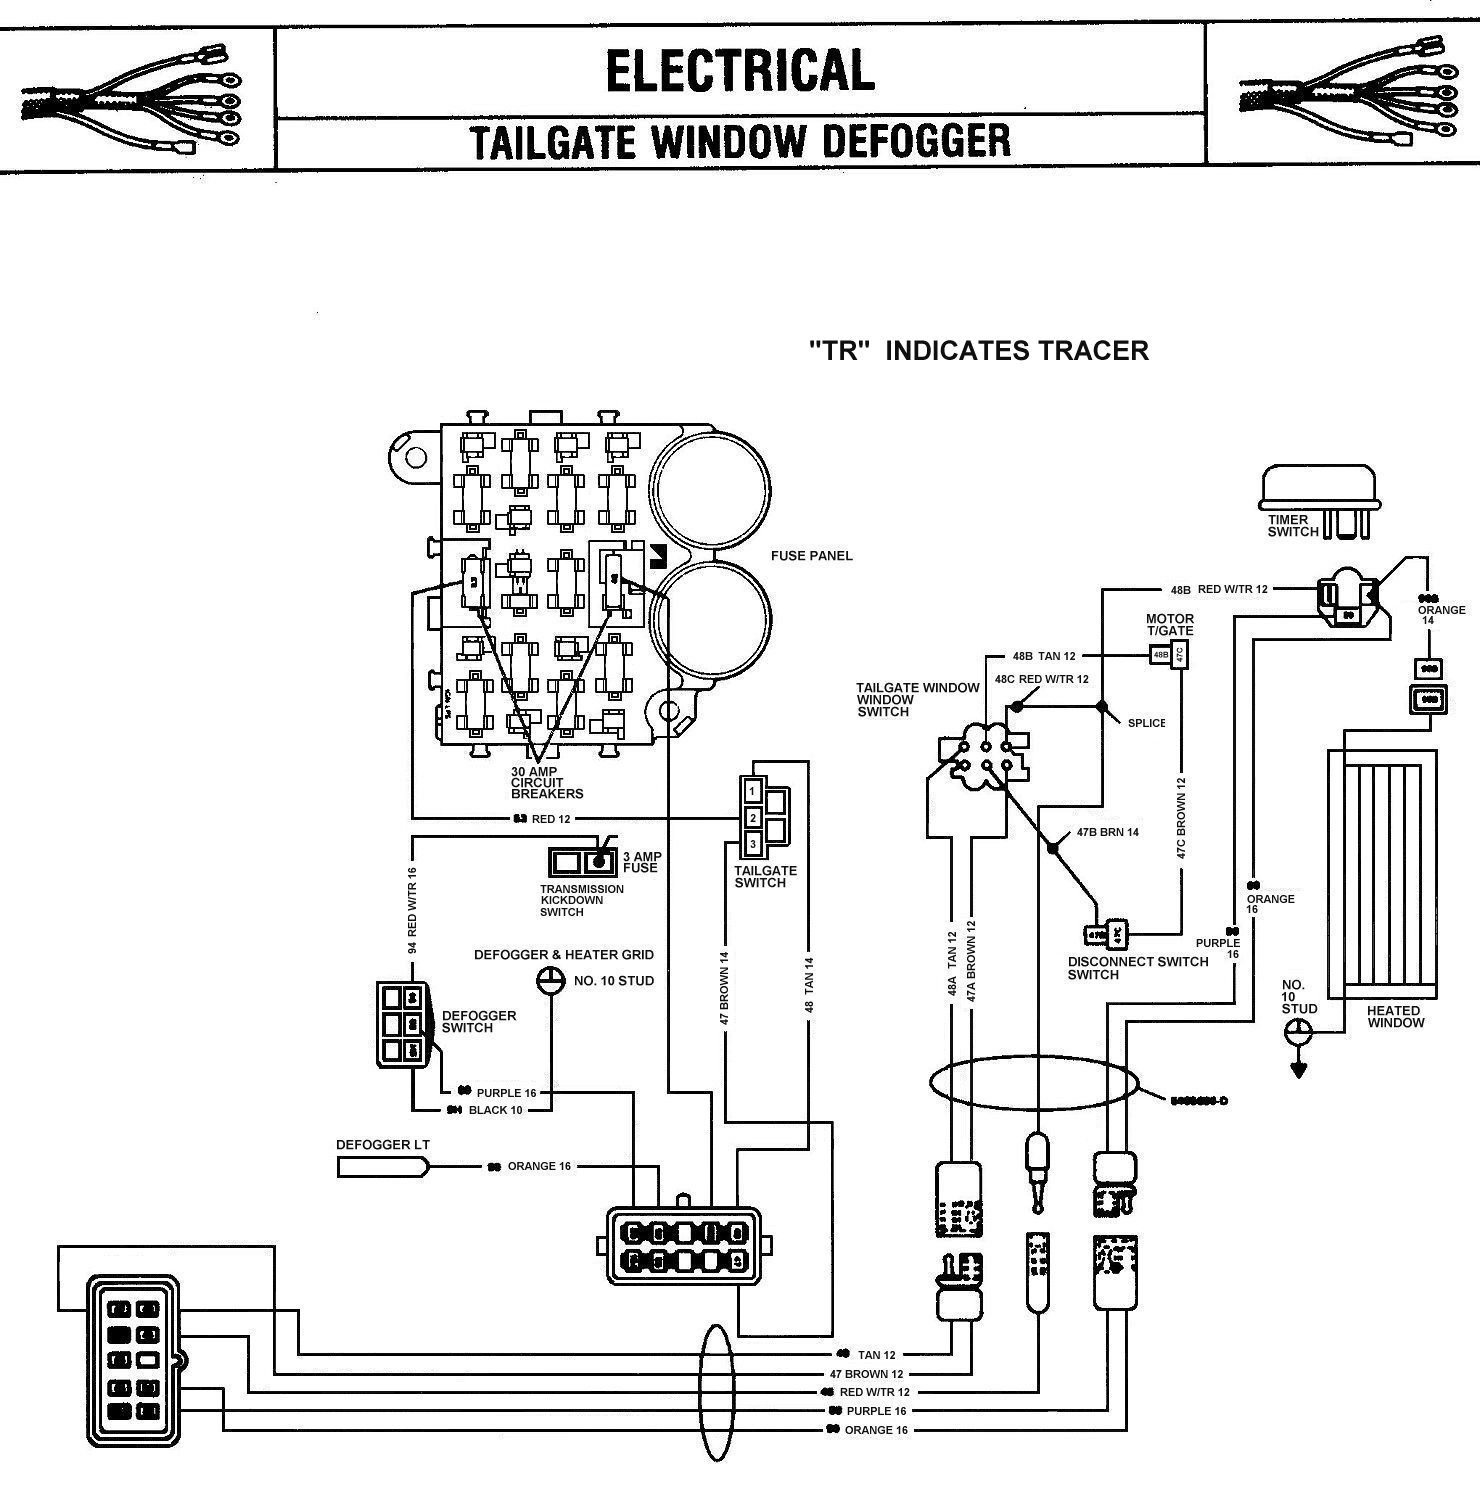 1980 Cj7 Wiring Diagram Fan Switch Data Grand Wagoneer On Rh Abetter Pw 85 Jeep Heater